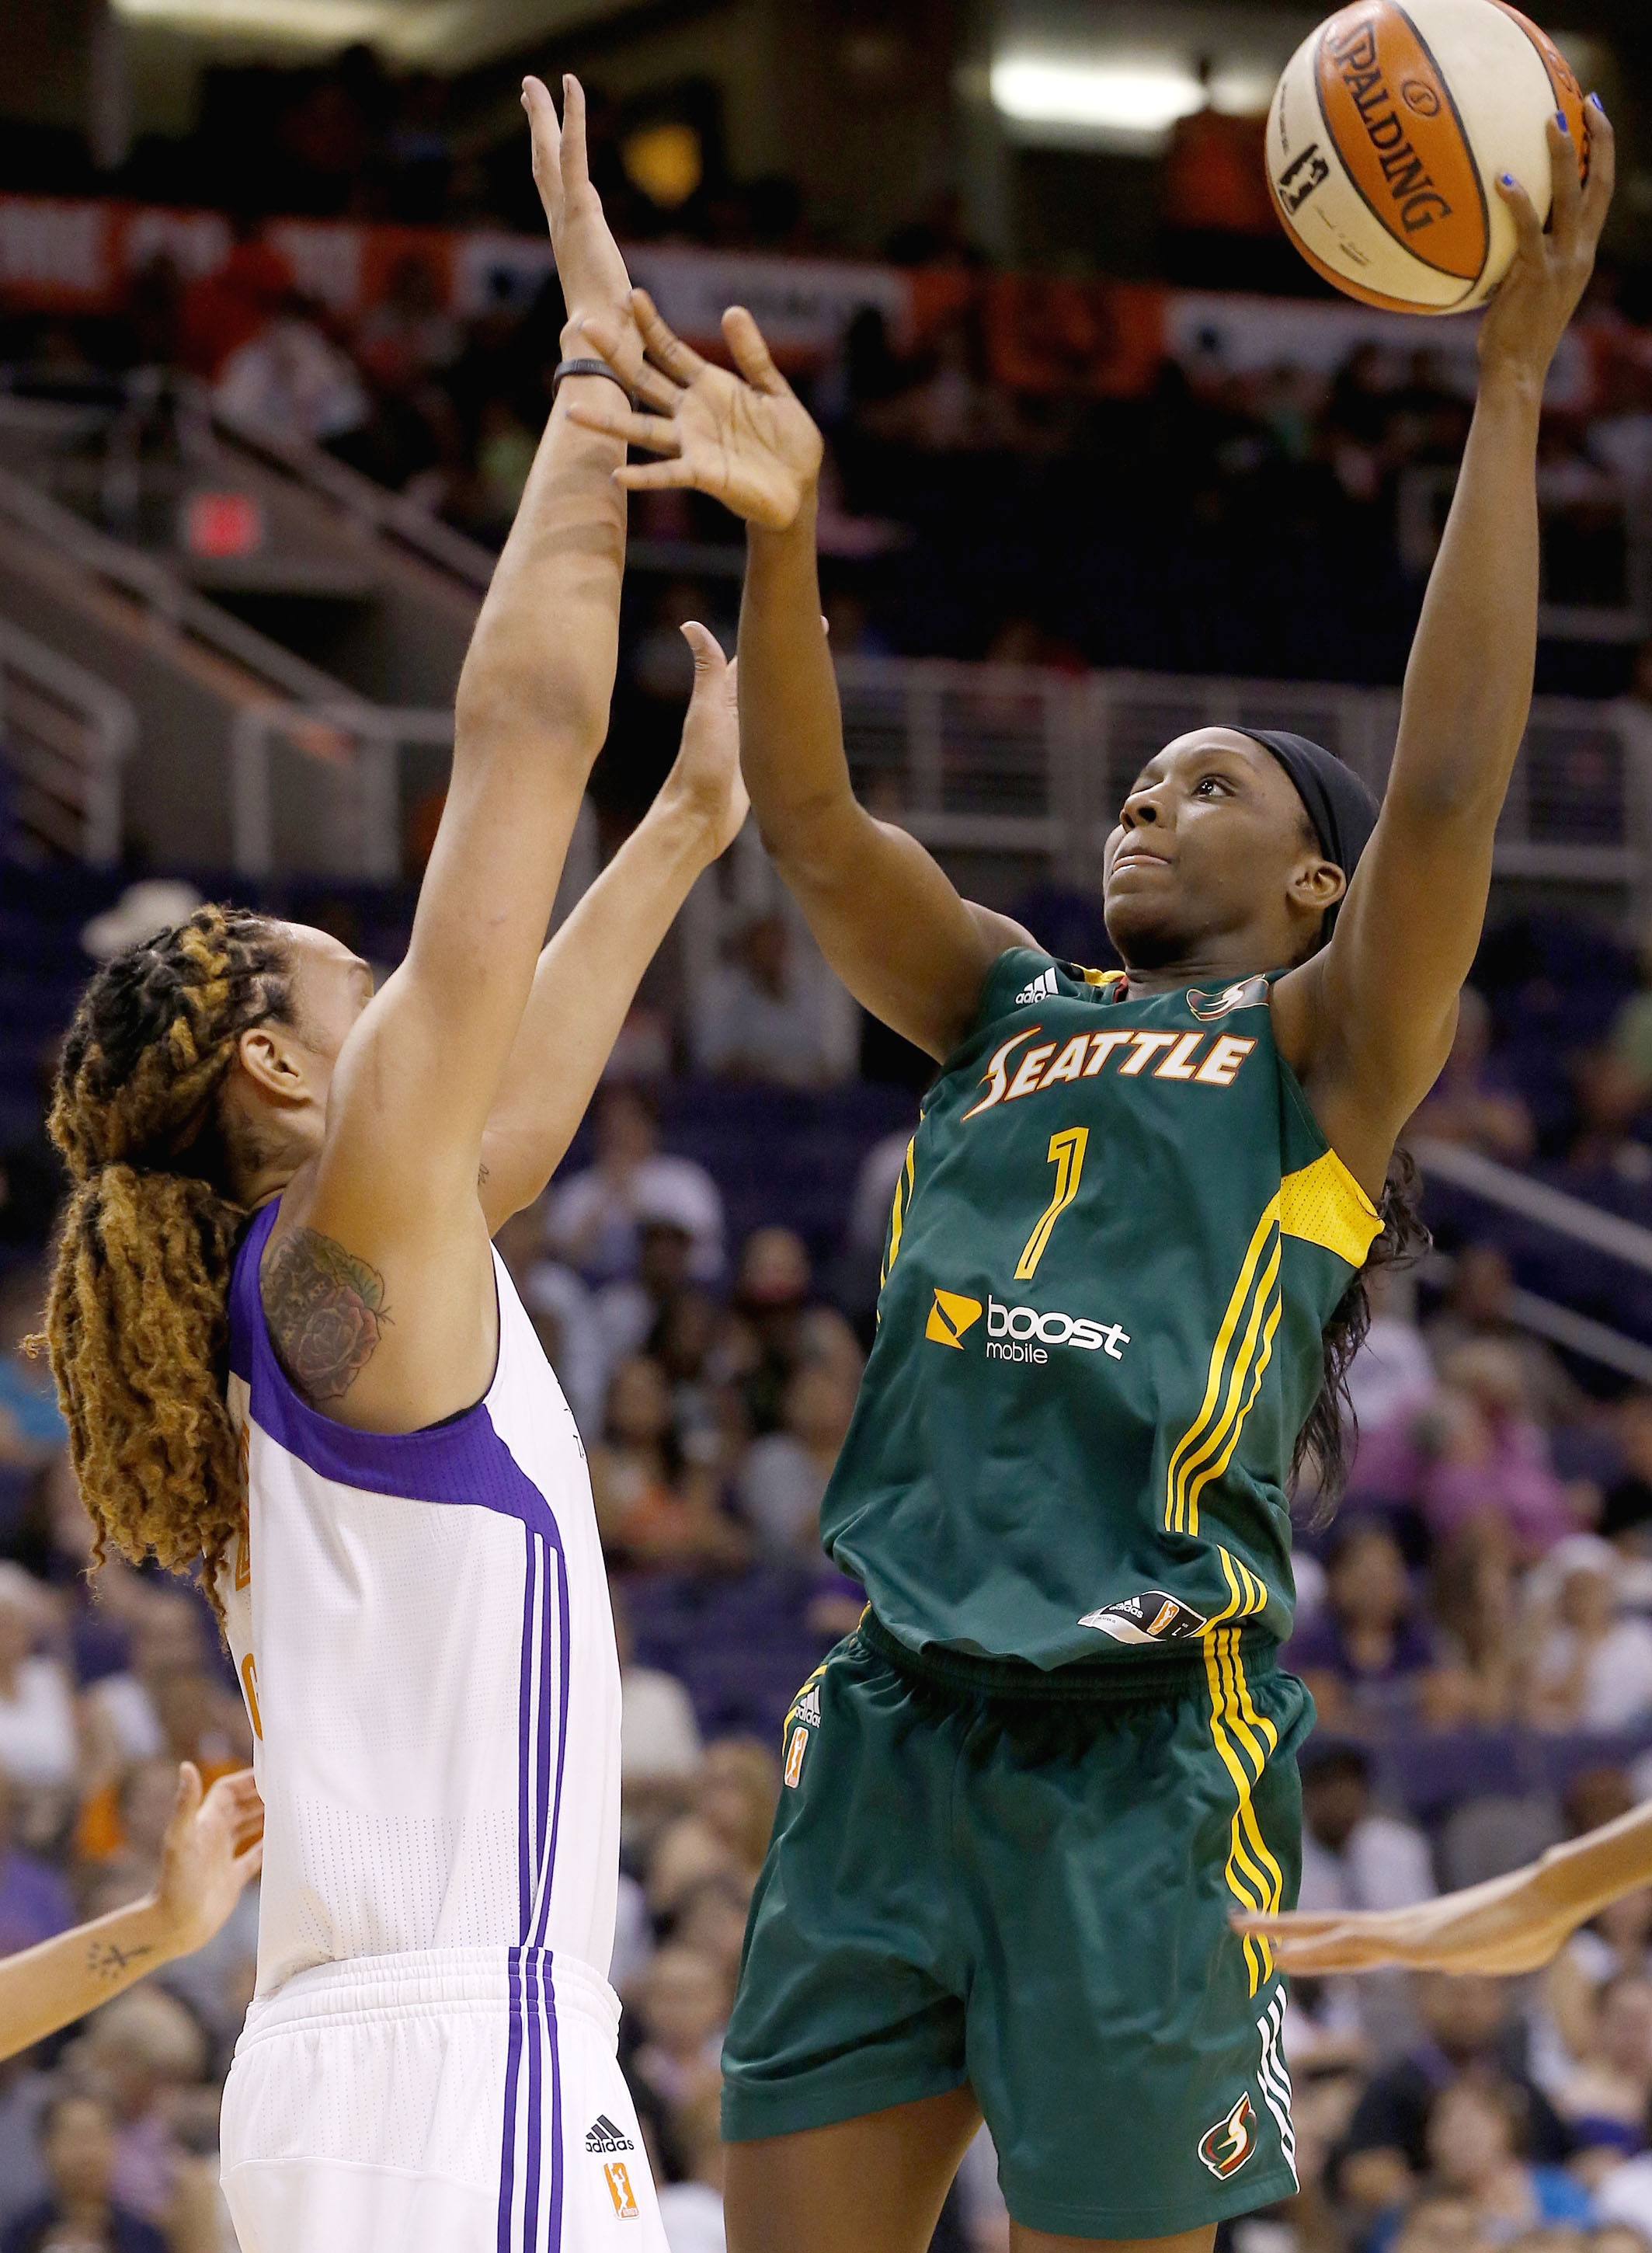 Seattle Storm's Crystal Langhorne (1) shoots over Phoenix Mercury's Brittney Griner, left, during the first half of a WNBA basketball game on Tuesday, June 3, 2014, in Phoenix